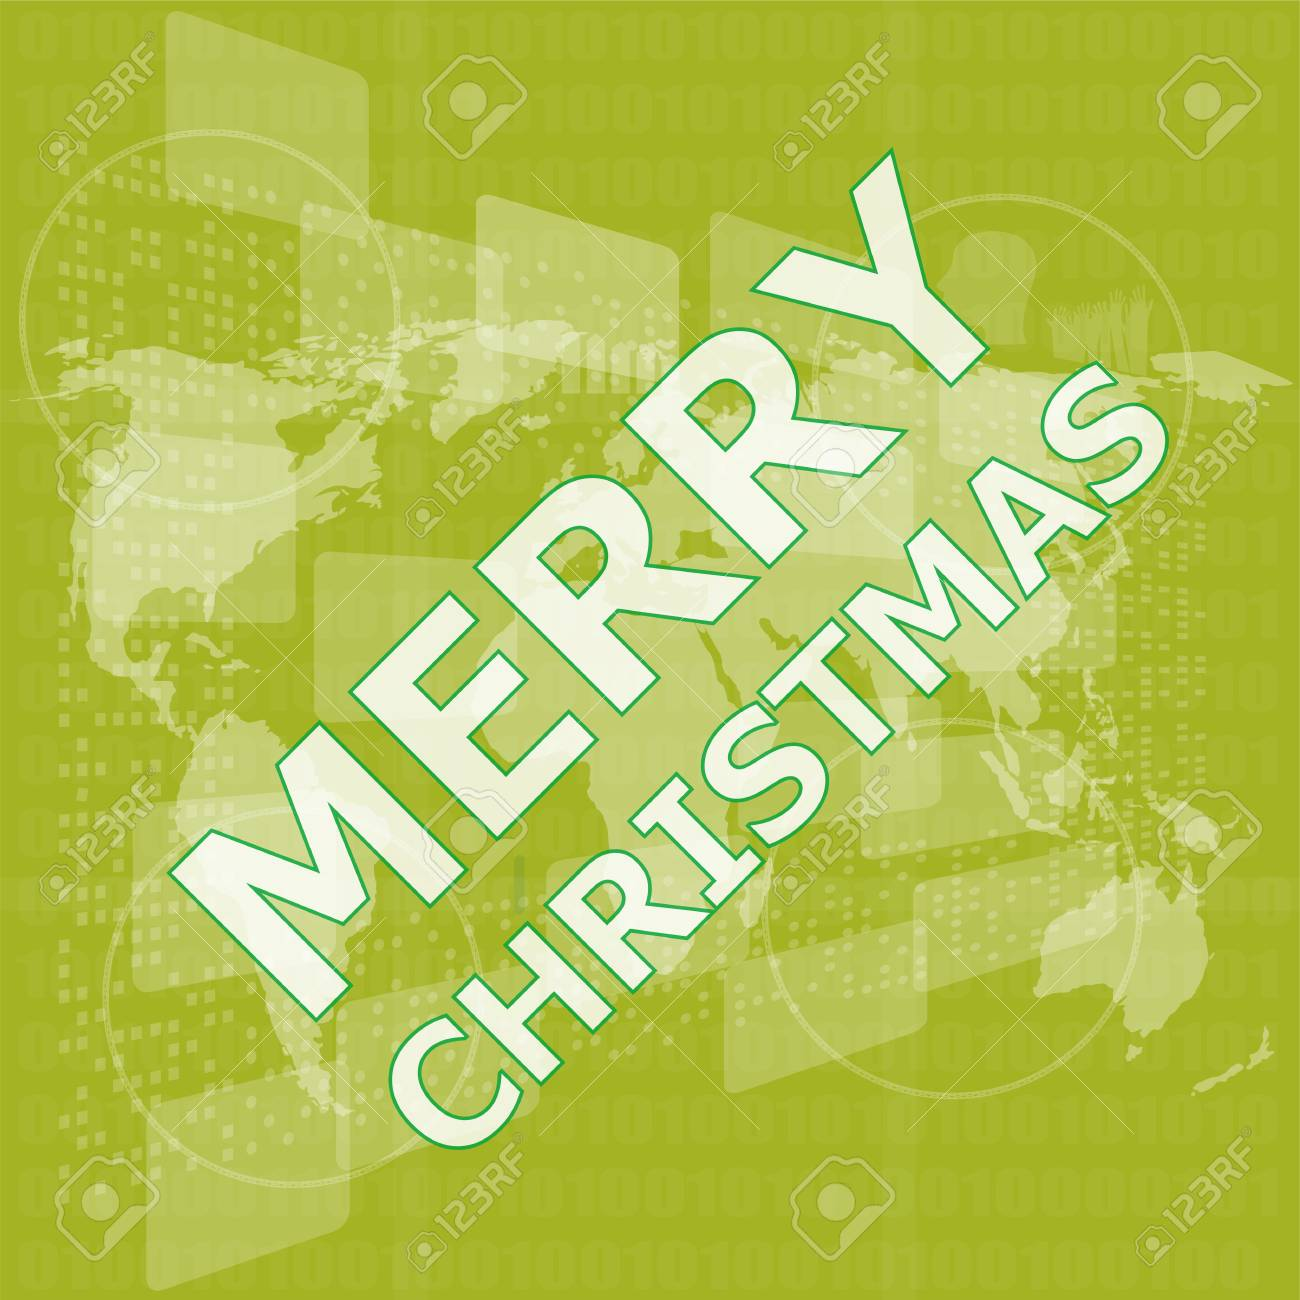 Merry Christmas Card Design Creative Concept Background For Stock